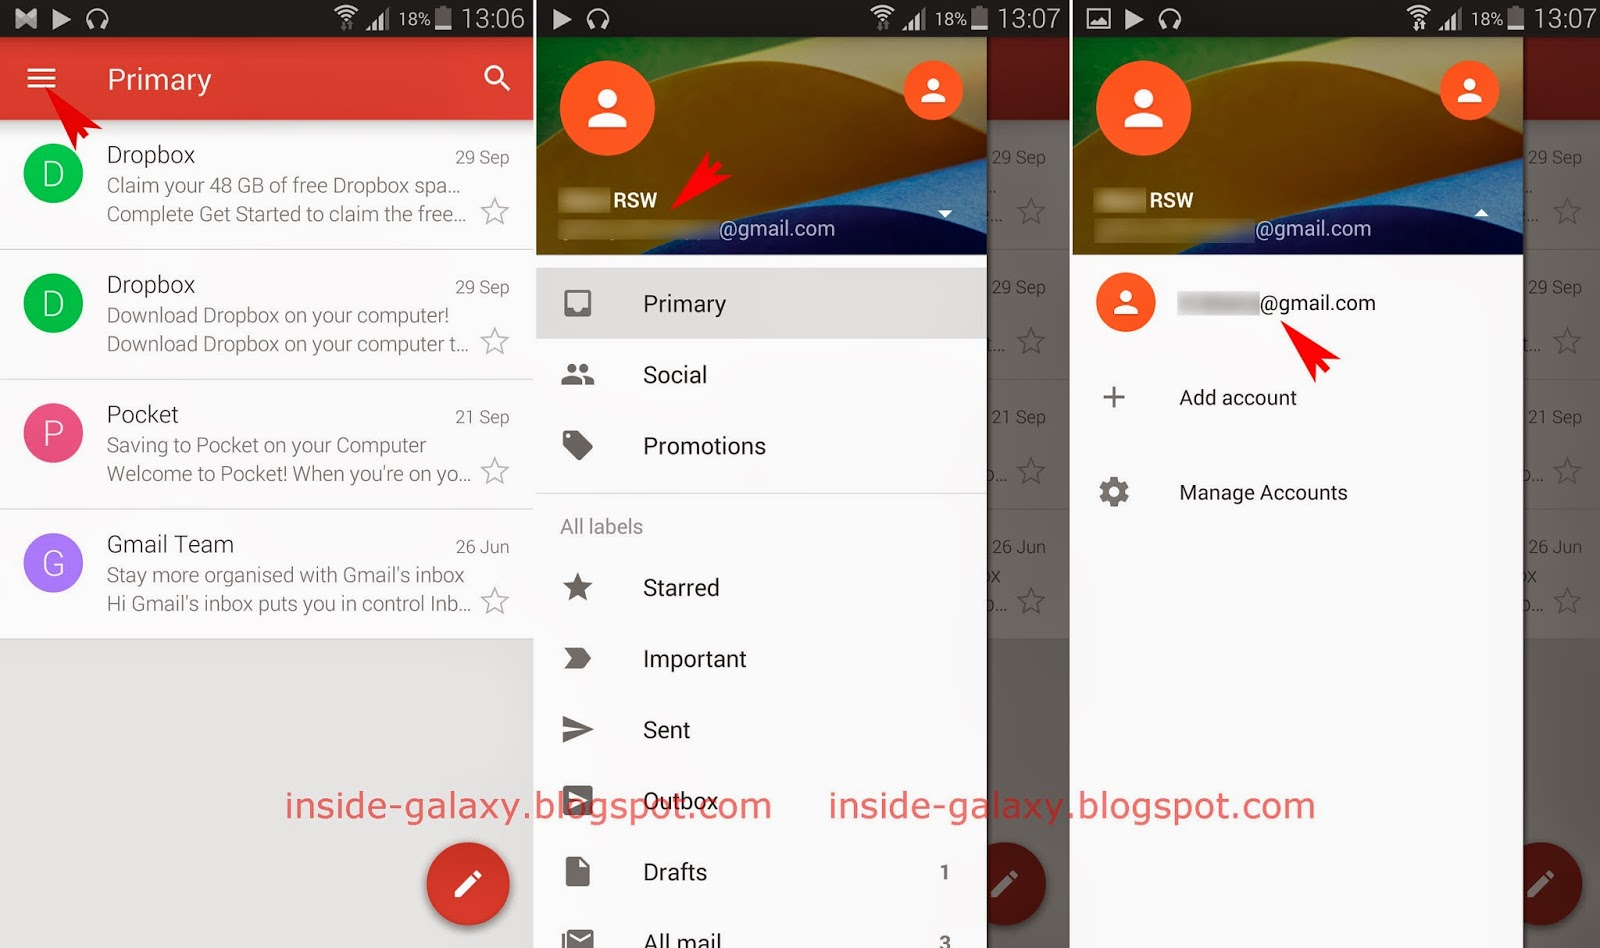 Samsung galaxy s5 how to switch between accounts in gmail for Acc email